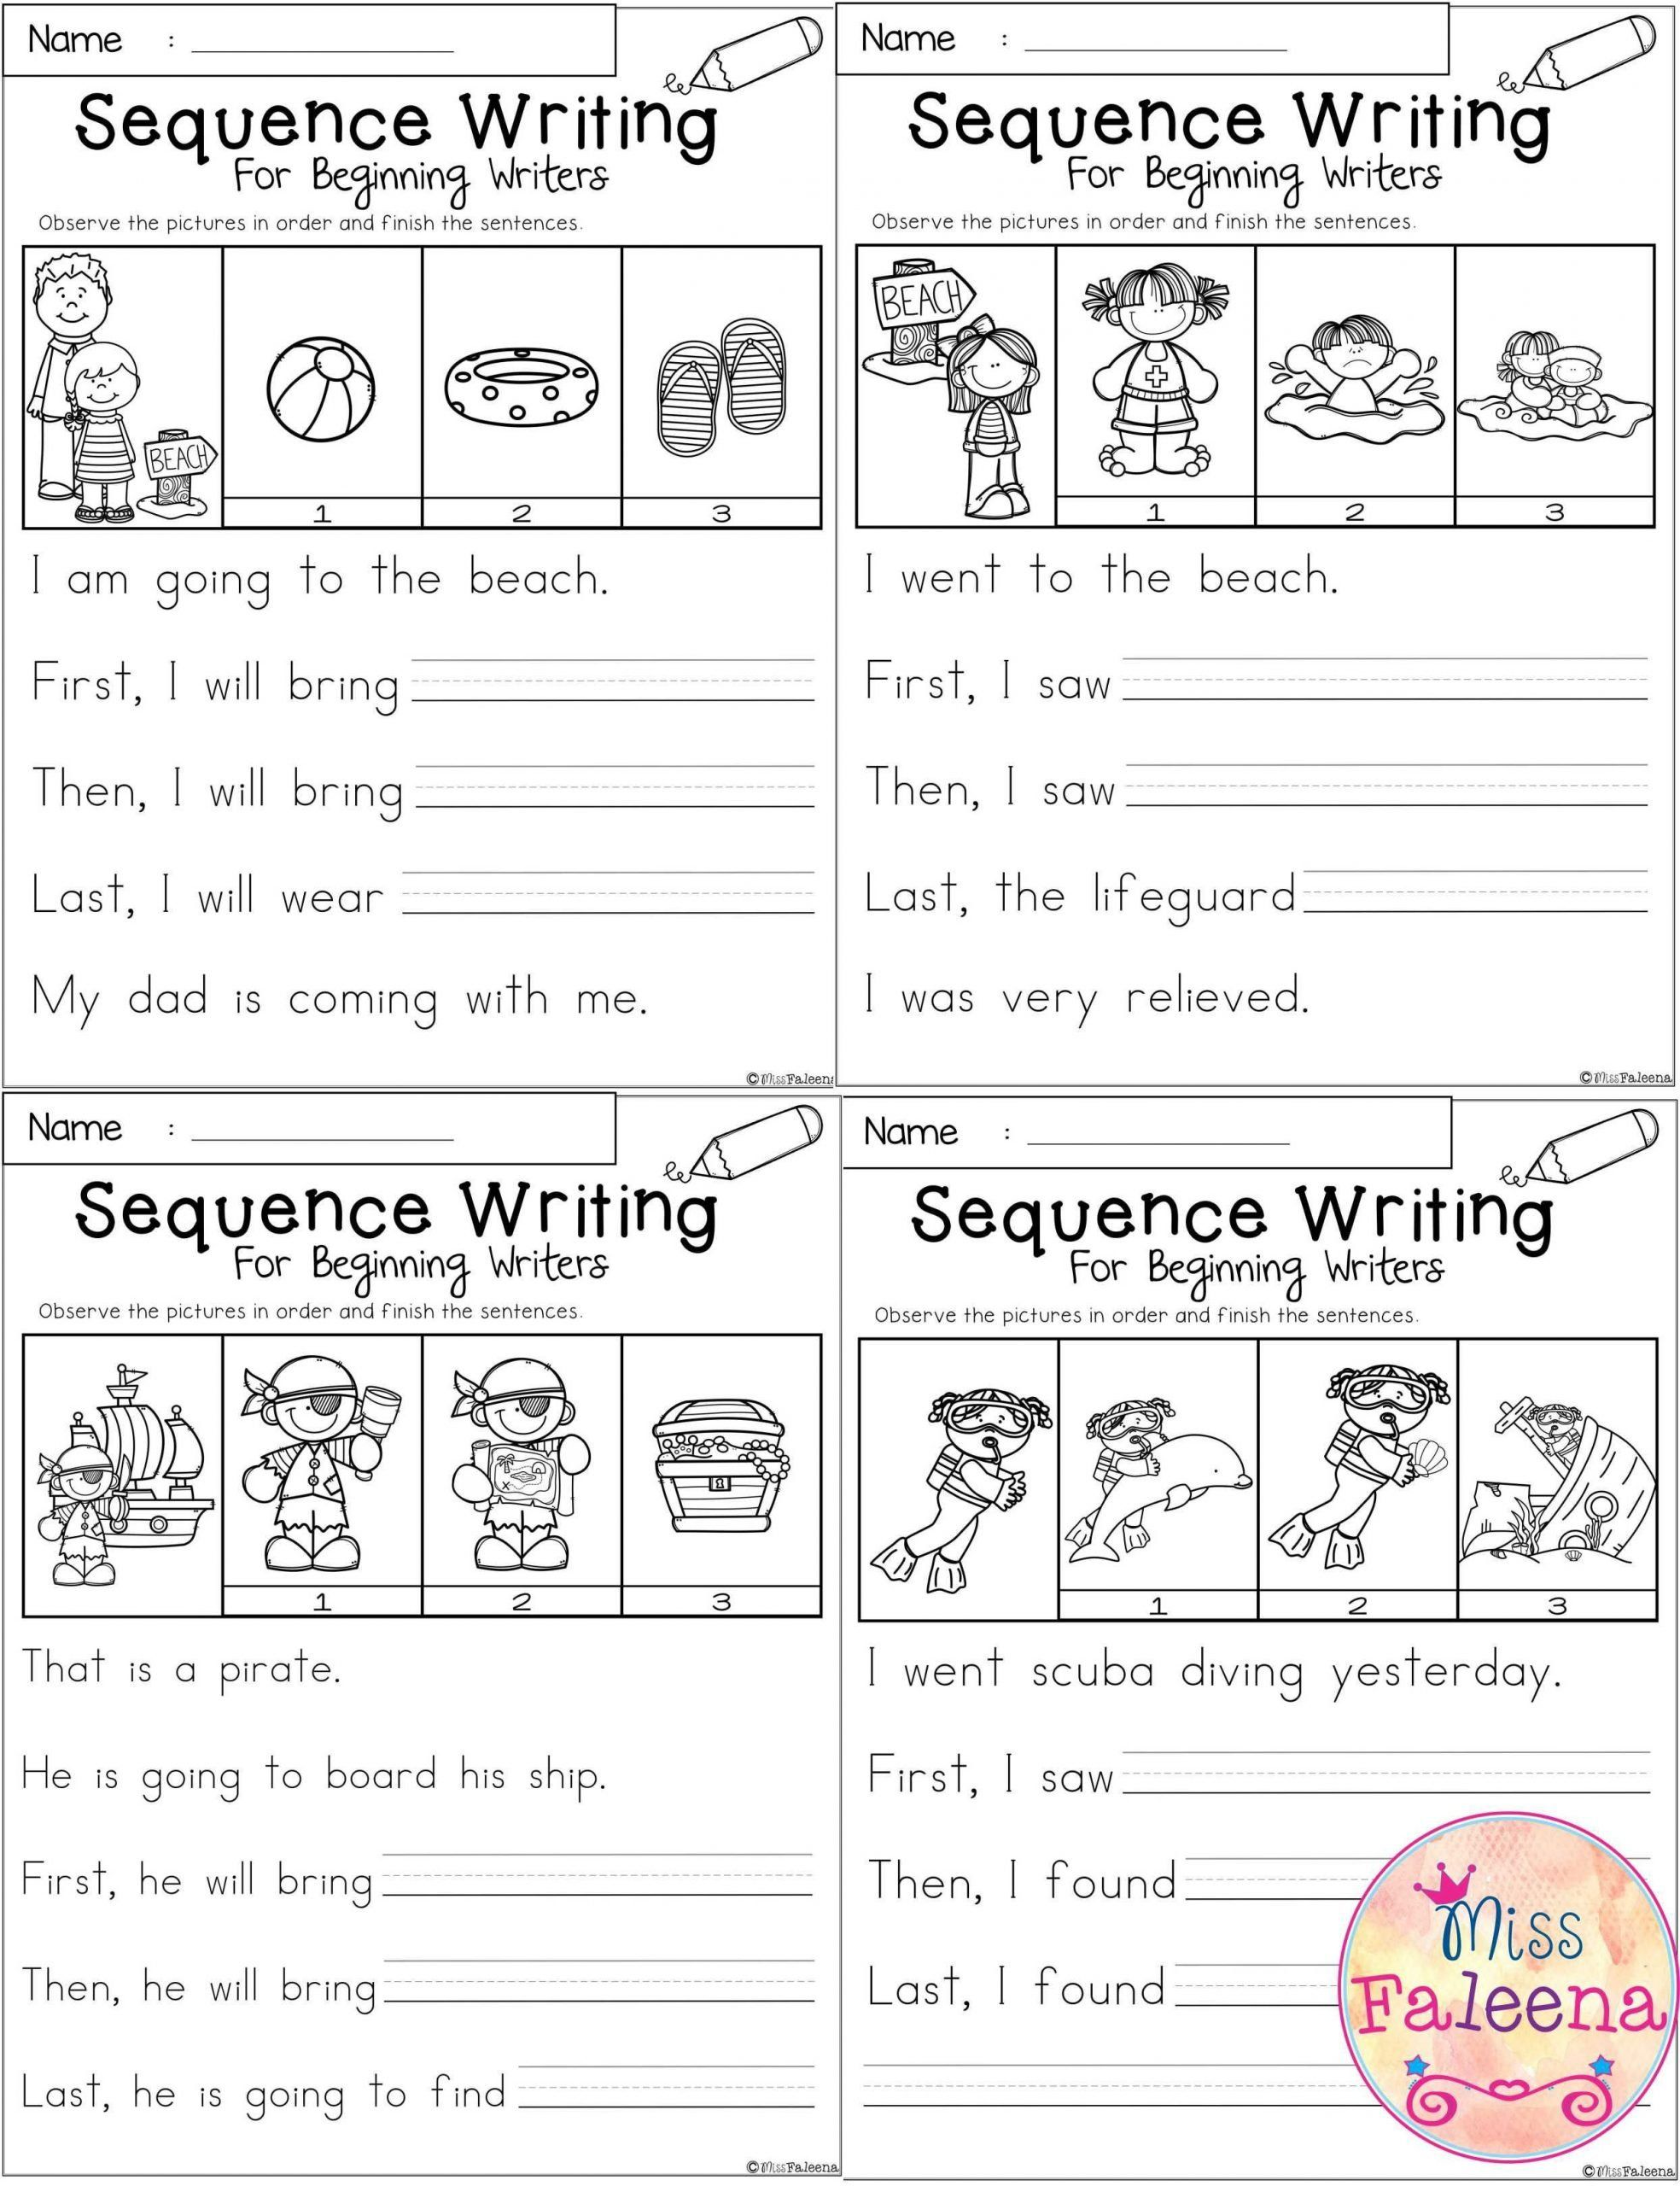 Sequencing Worksheet First Grade August Sequence Writing For Beginning Writers In 2020 Sequencing Worksheets Sequence Writing Story Sequencing Worksheets